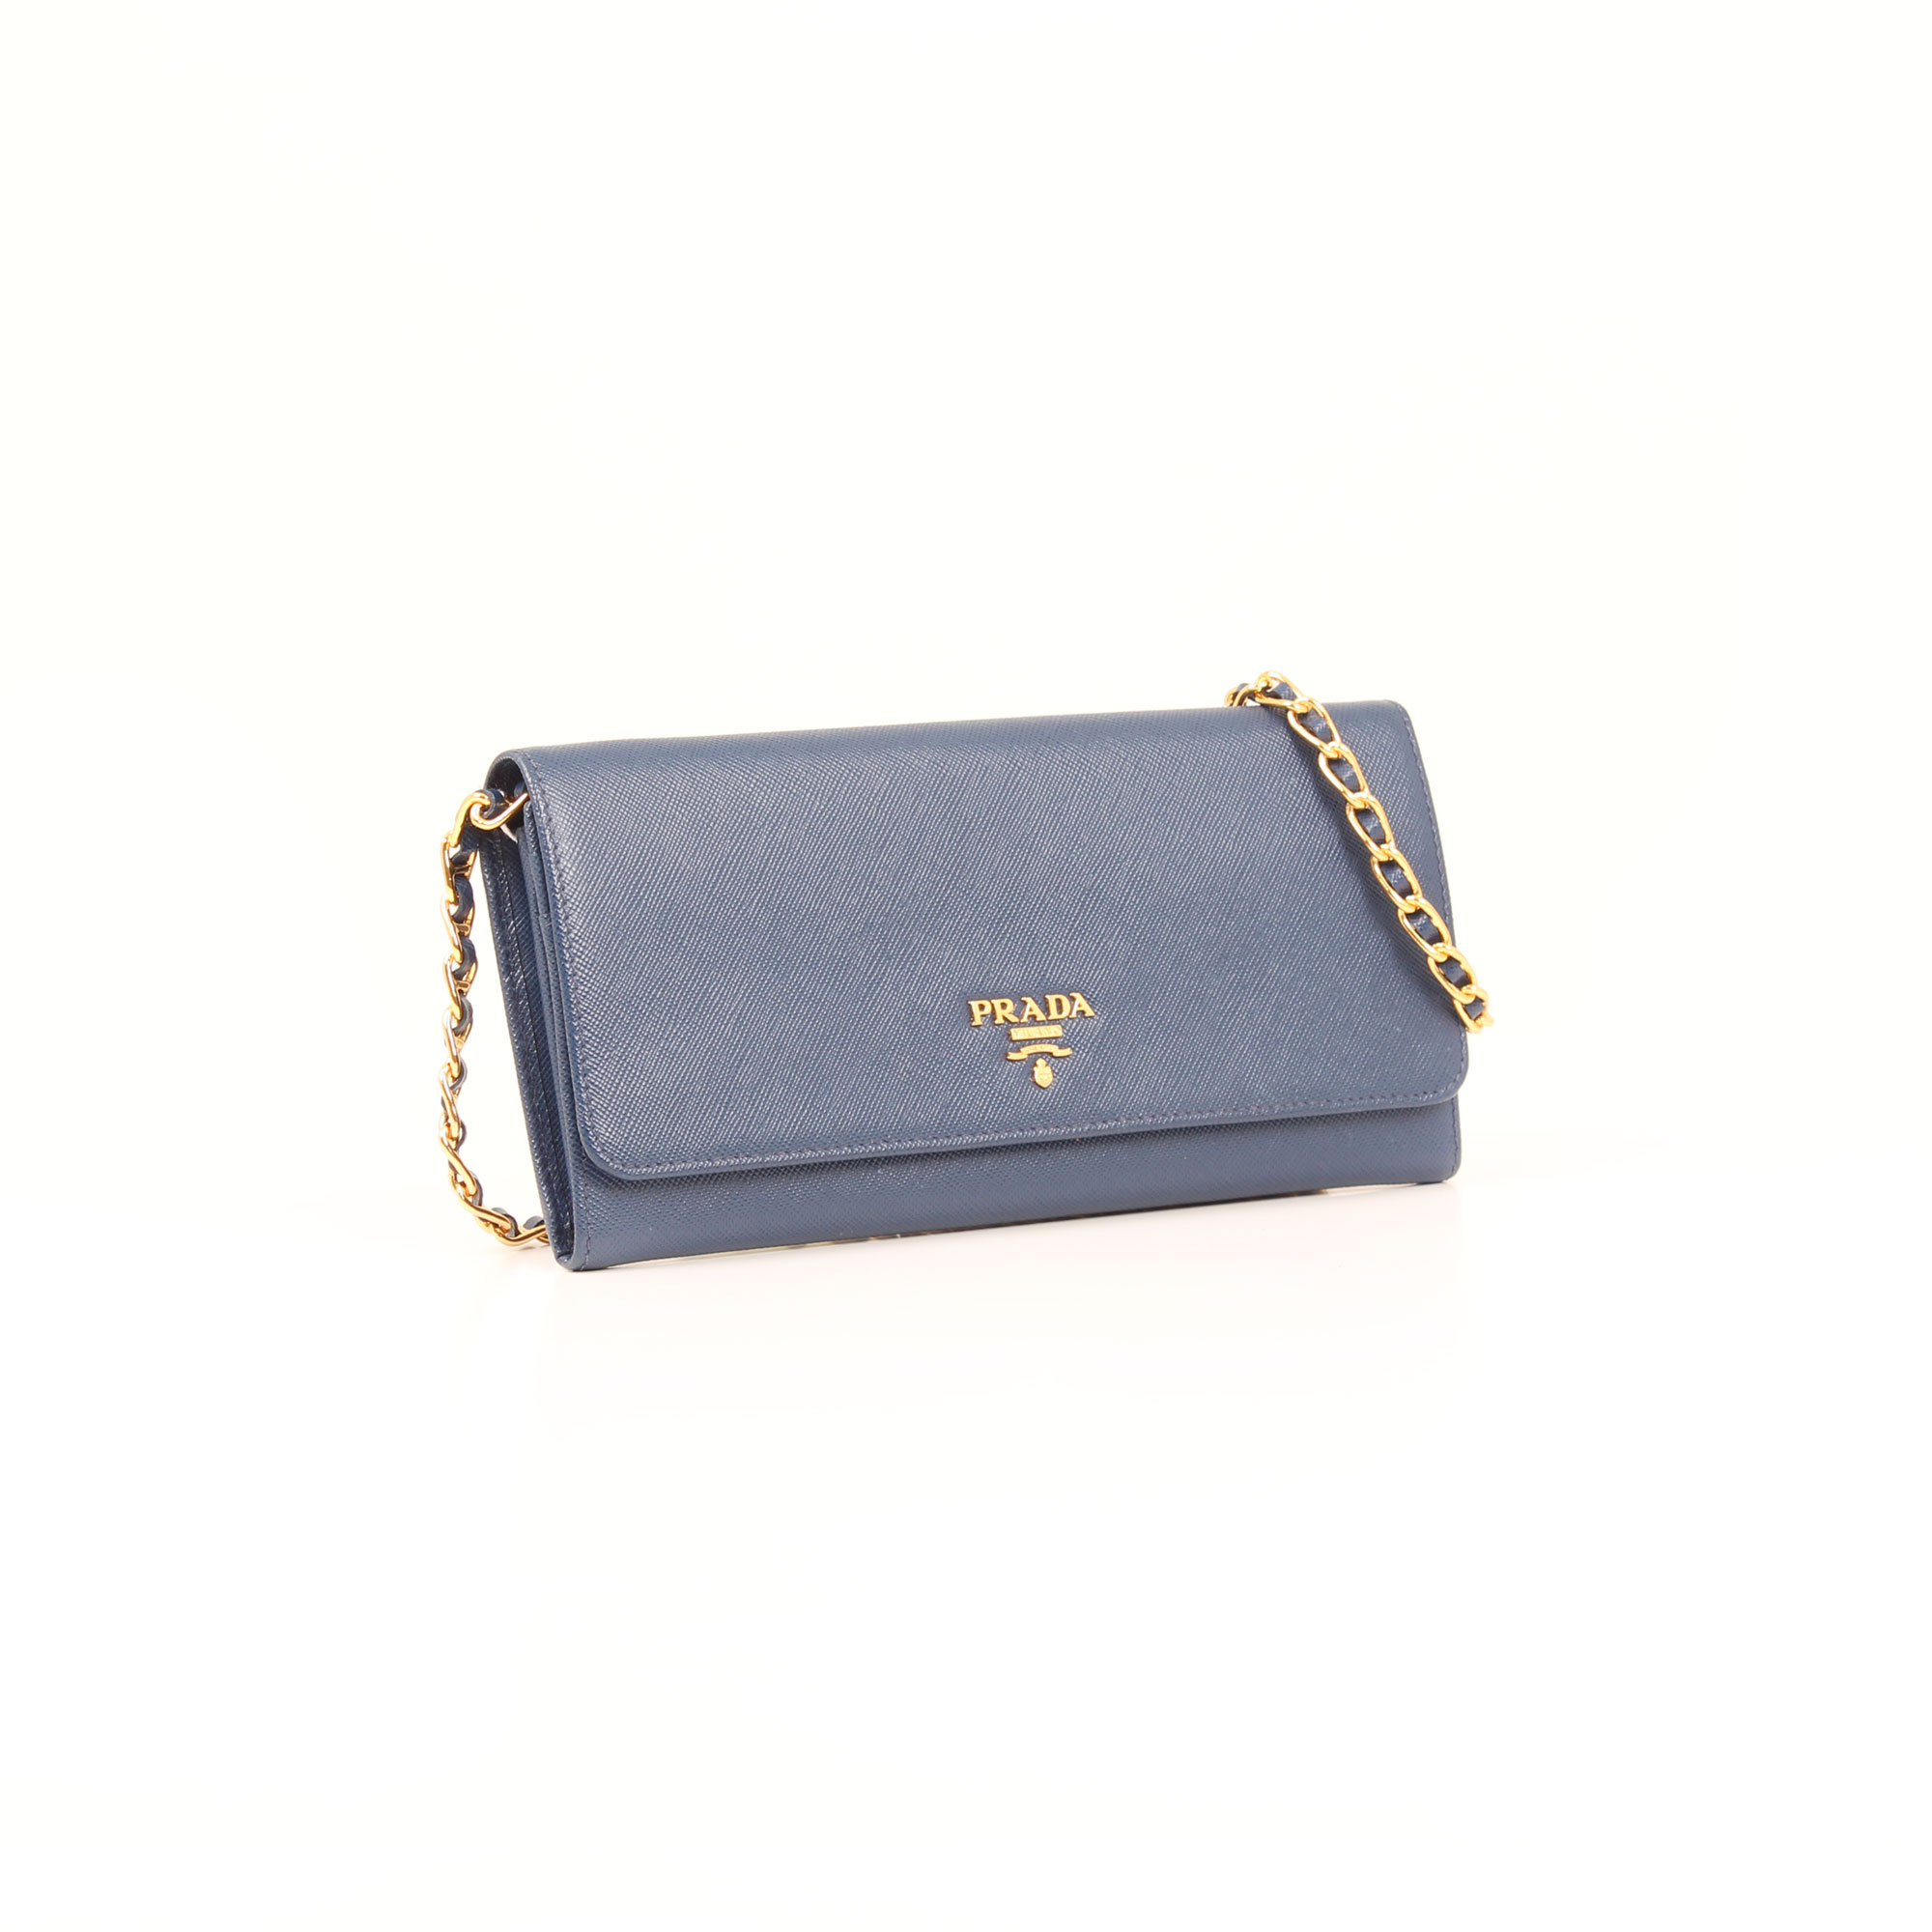 bolso-prada-wallet-on-chain-saffiano-metal-bluette-azul-general